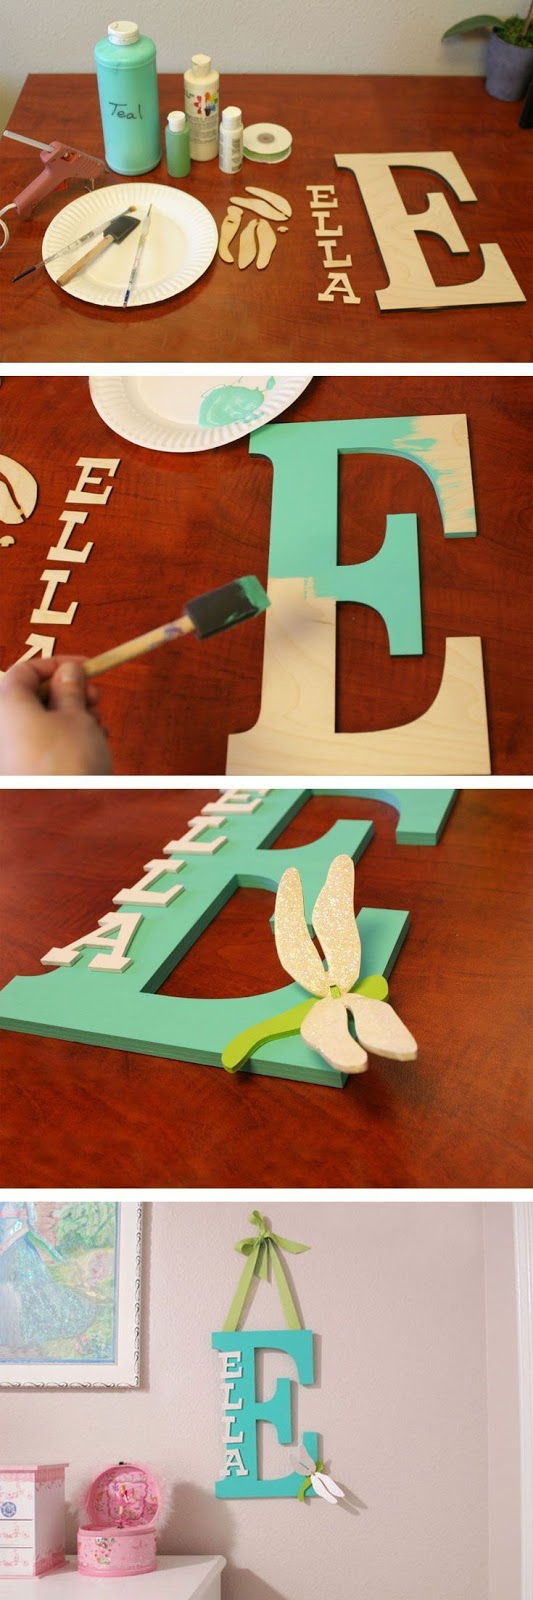 Monogram Wall Decor Ideas : Monogram wall art decore ideas creativecollections